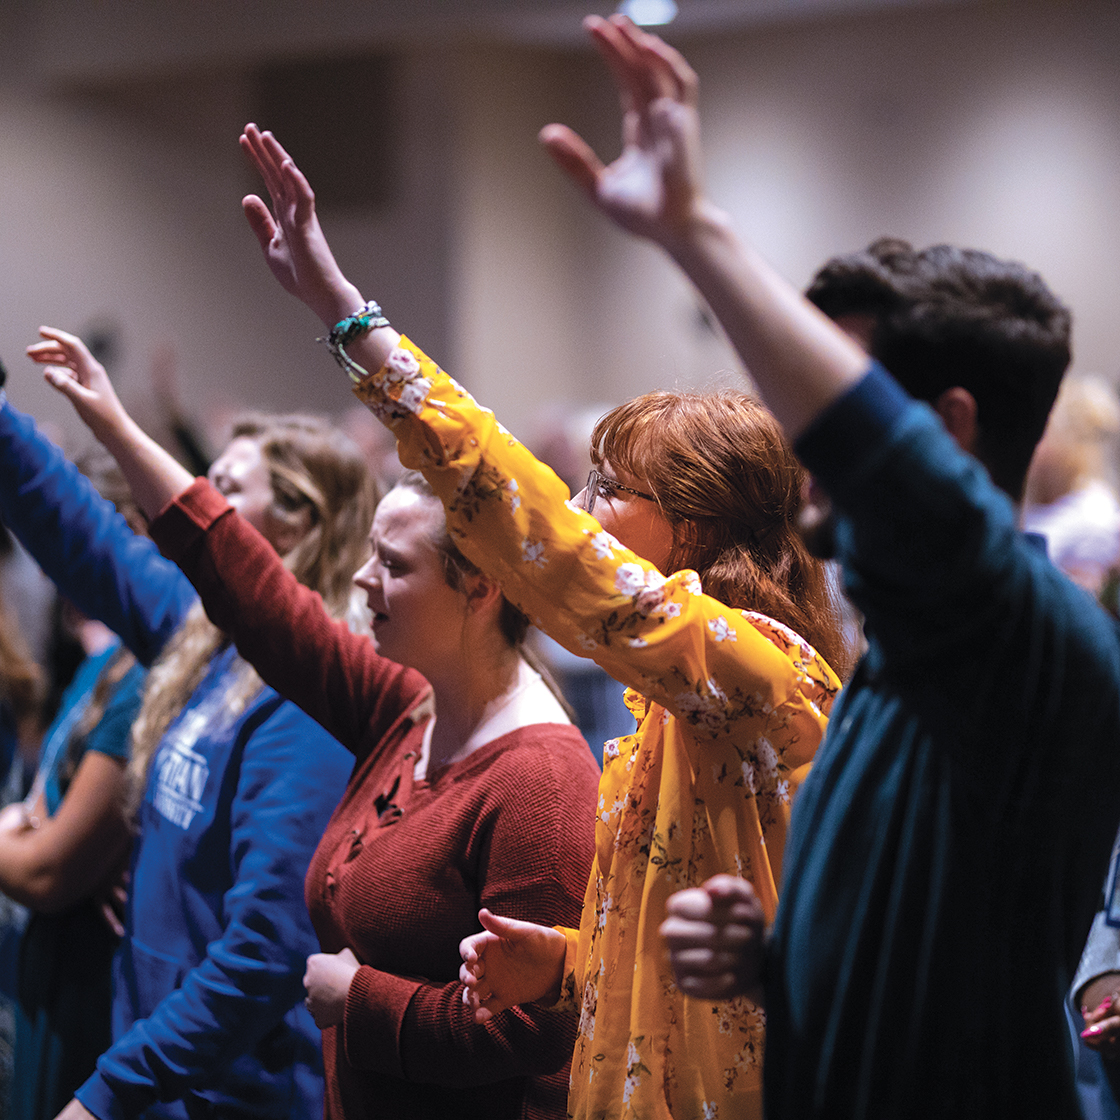 Students with hands raised in worship